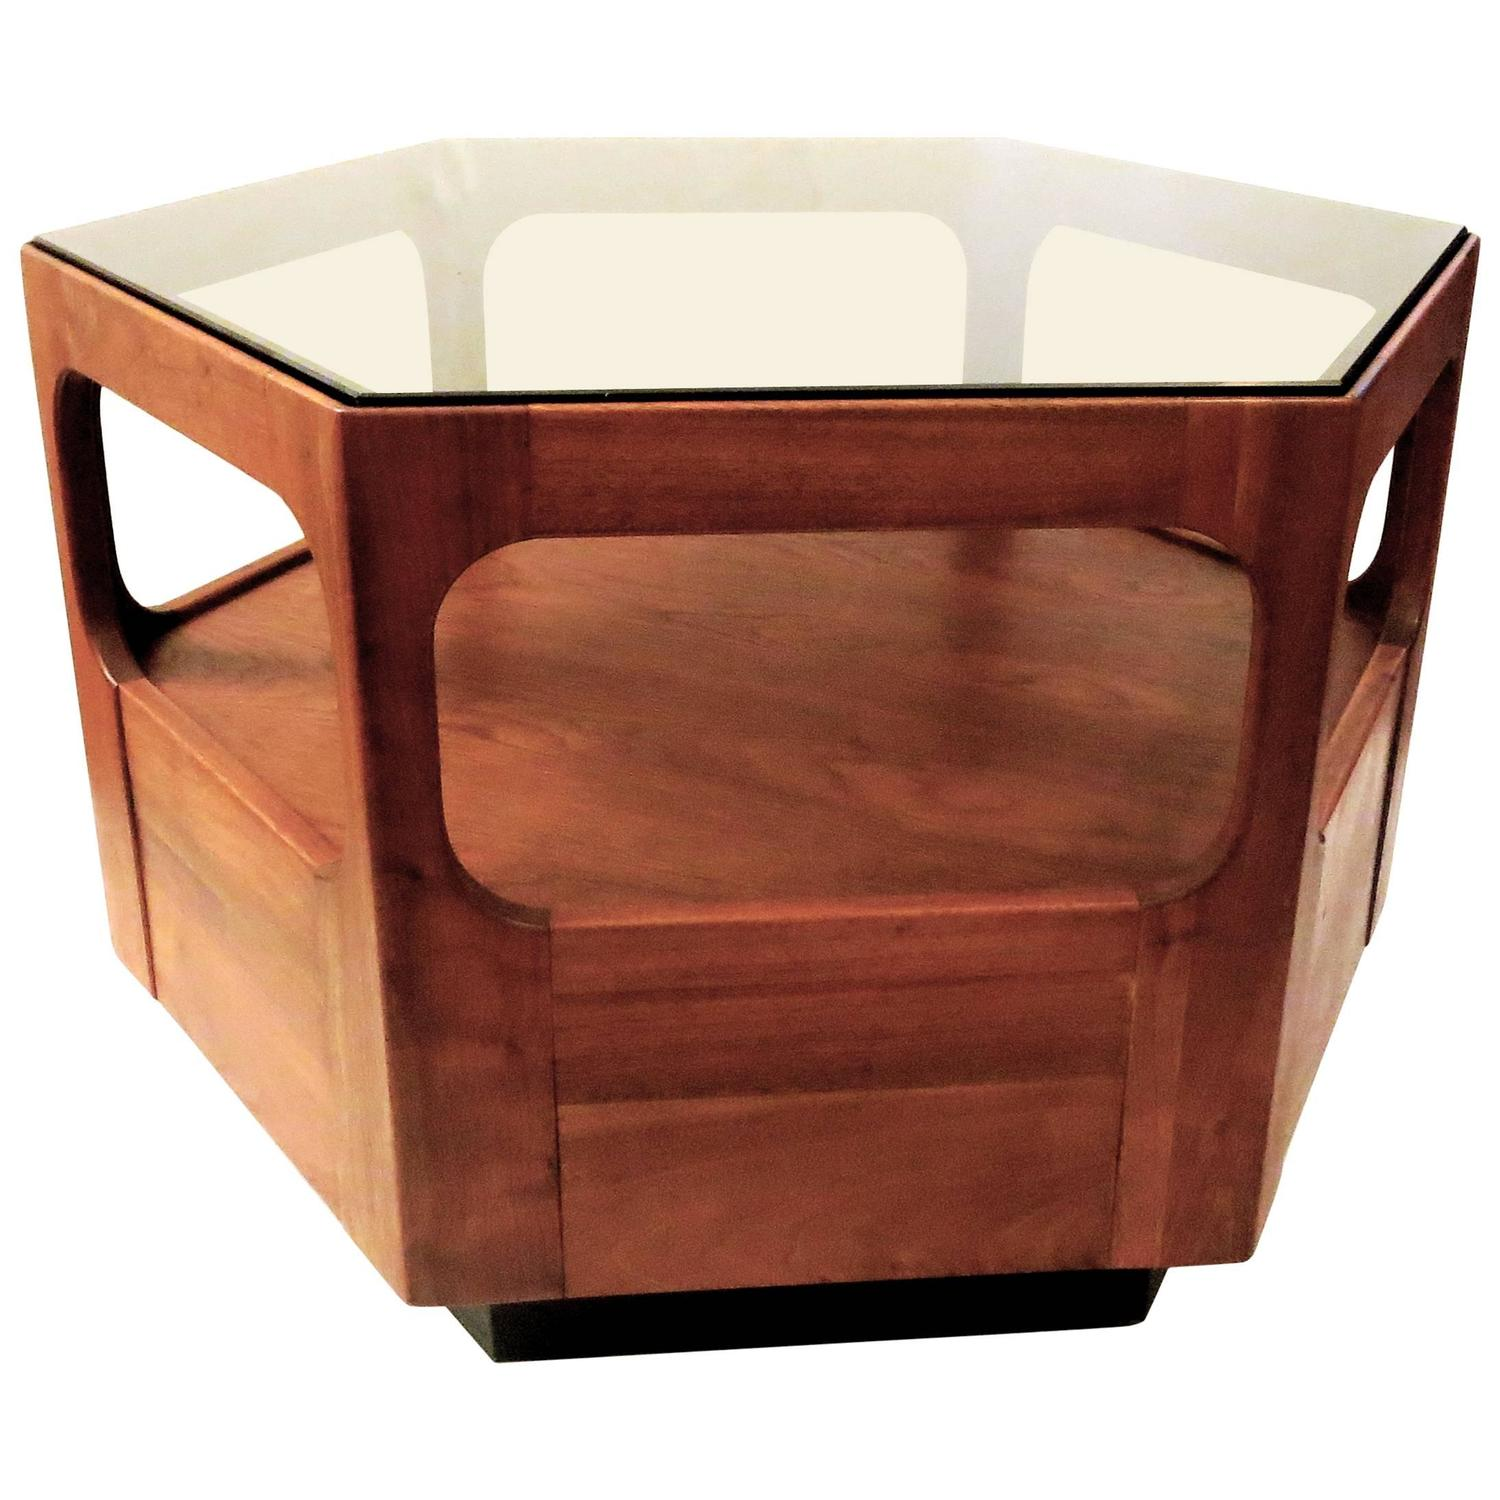 1960s American Mid Century Modern Hexagon Walnut And Smoke Glass Cocktail Table At 1stdibs